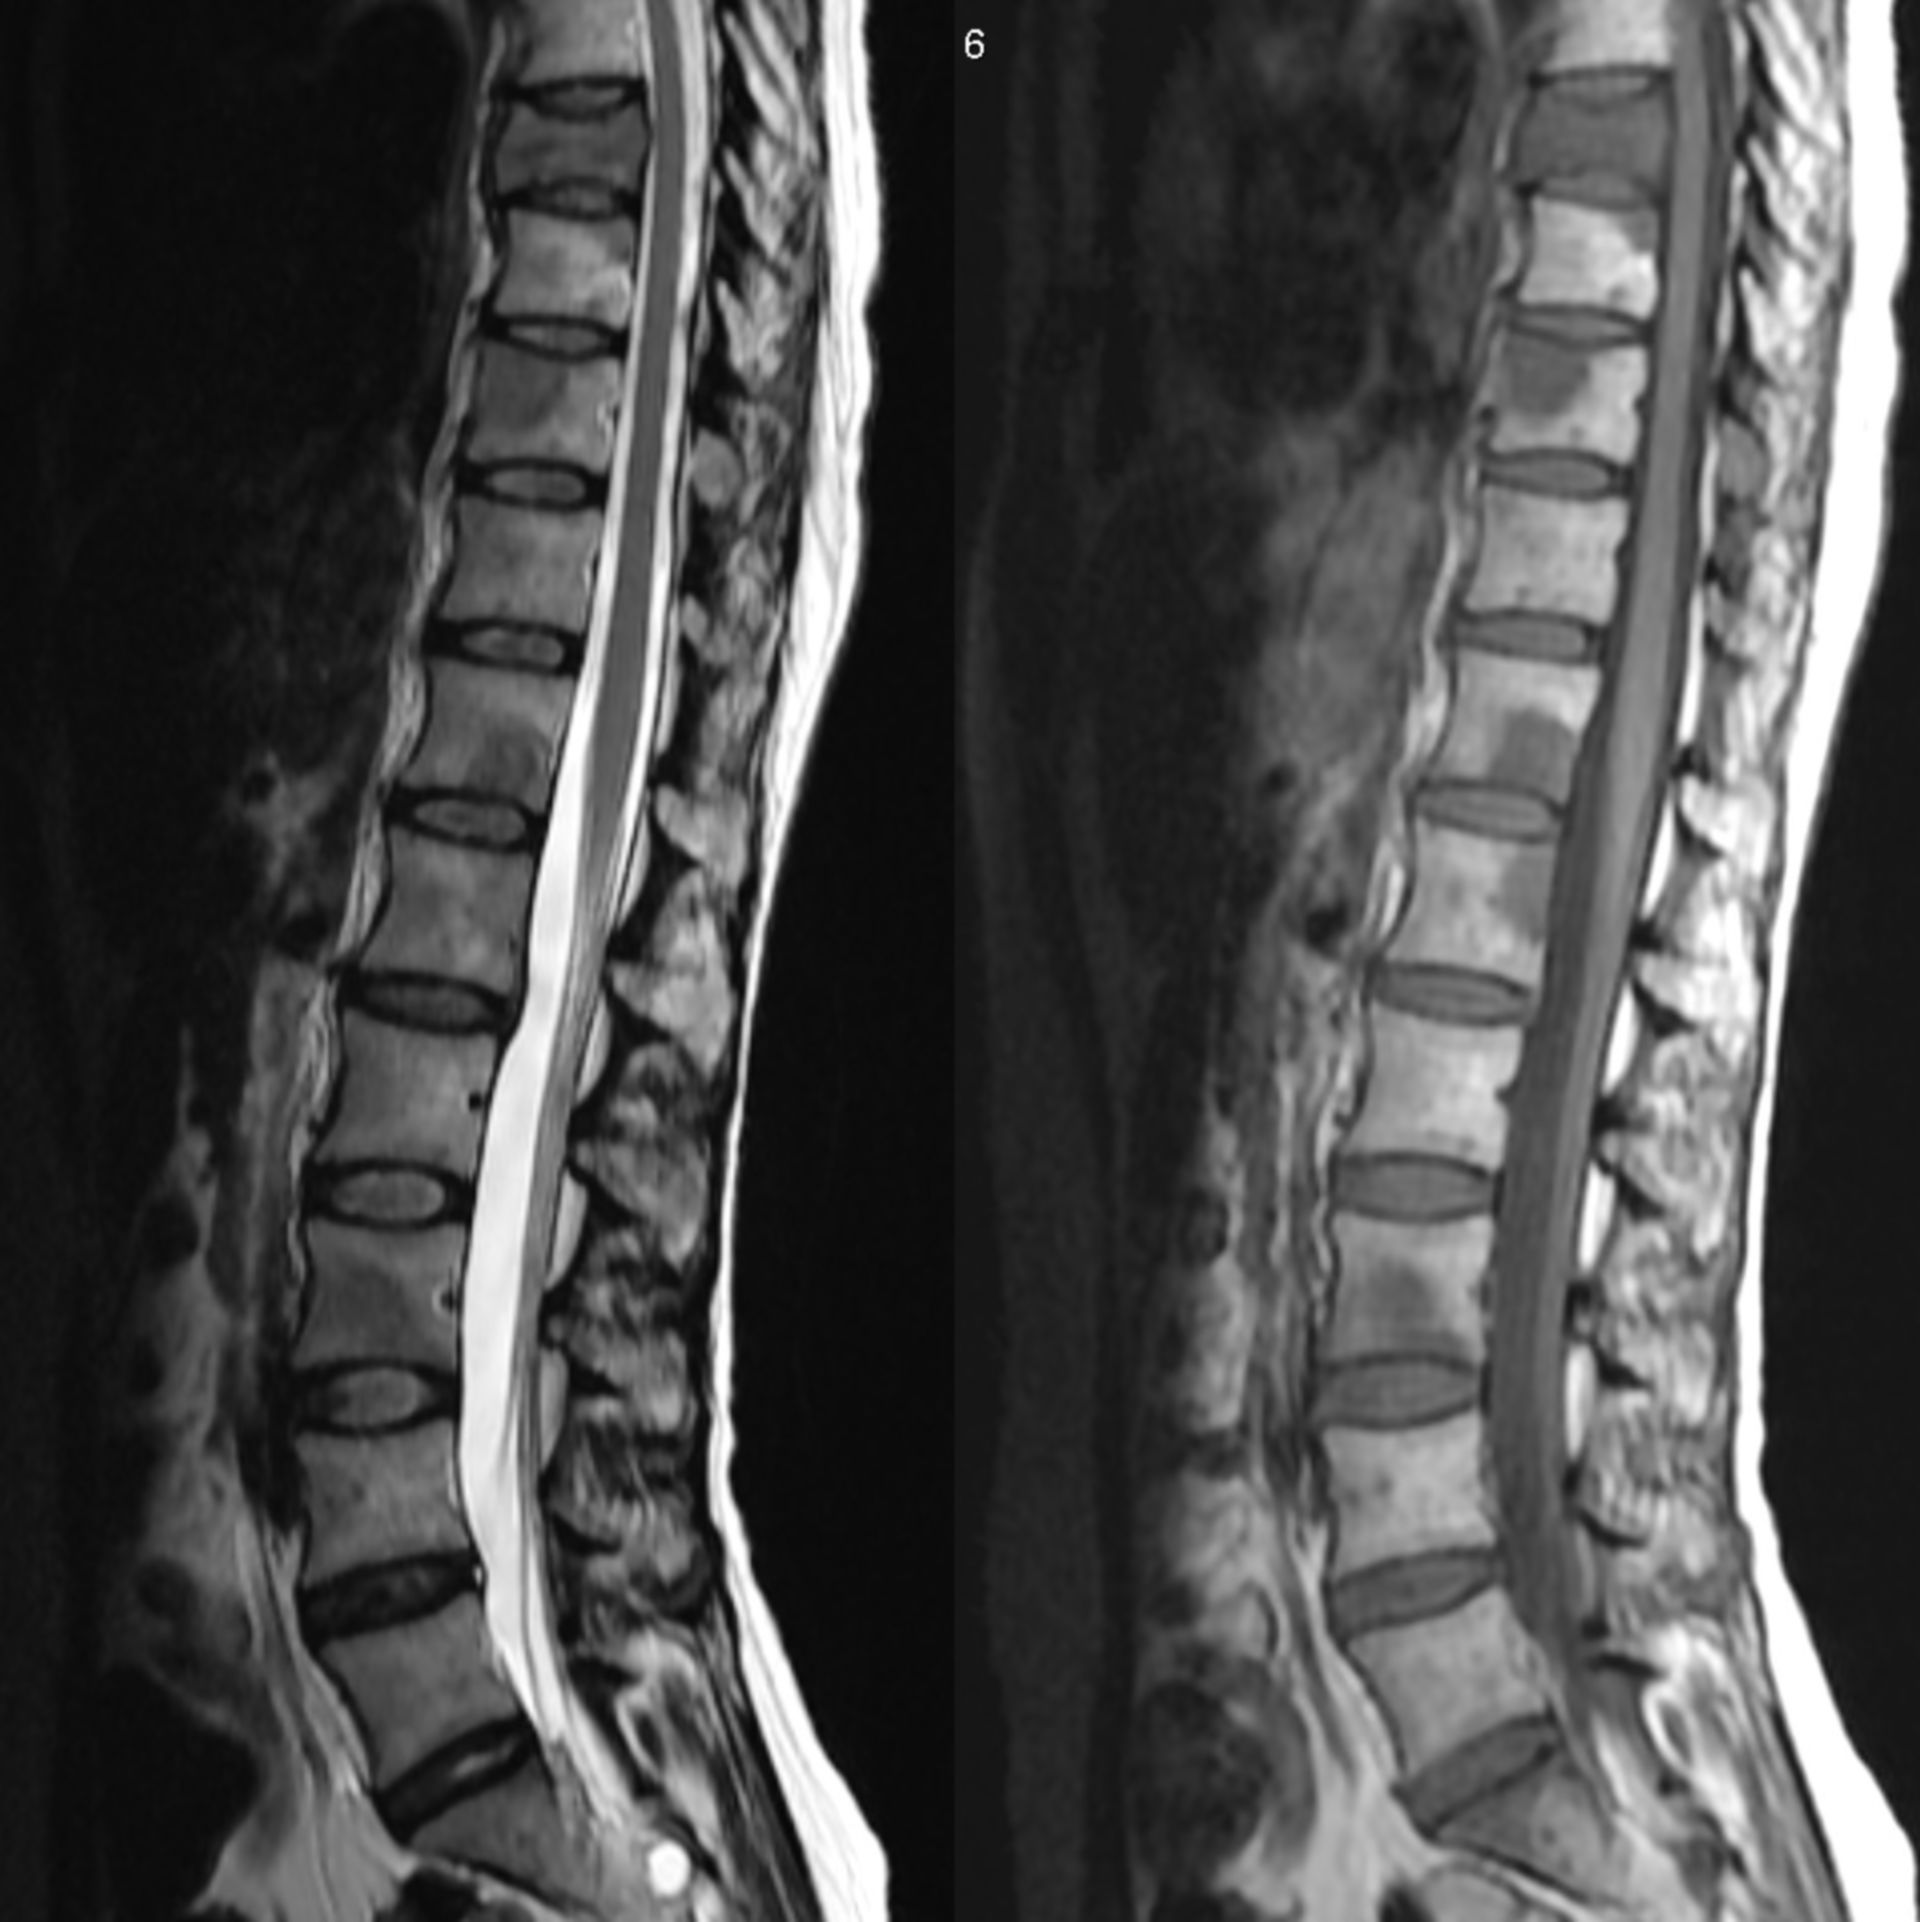 Spinal Metastases from breast carcinoma